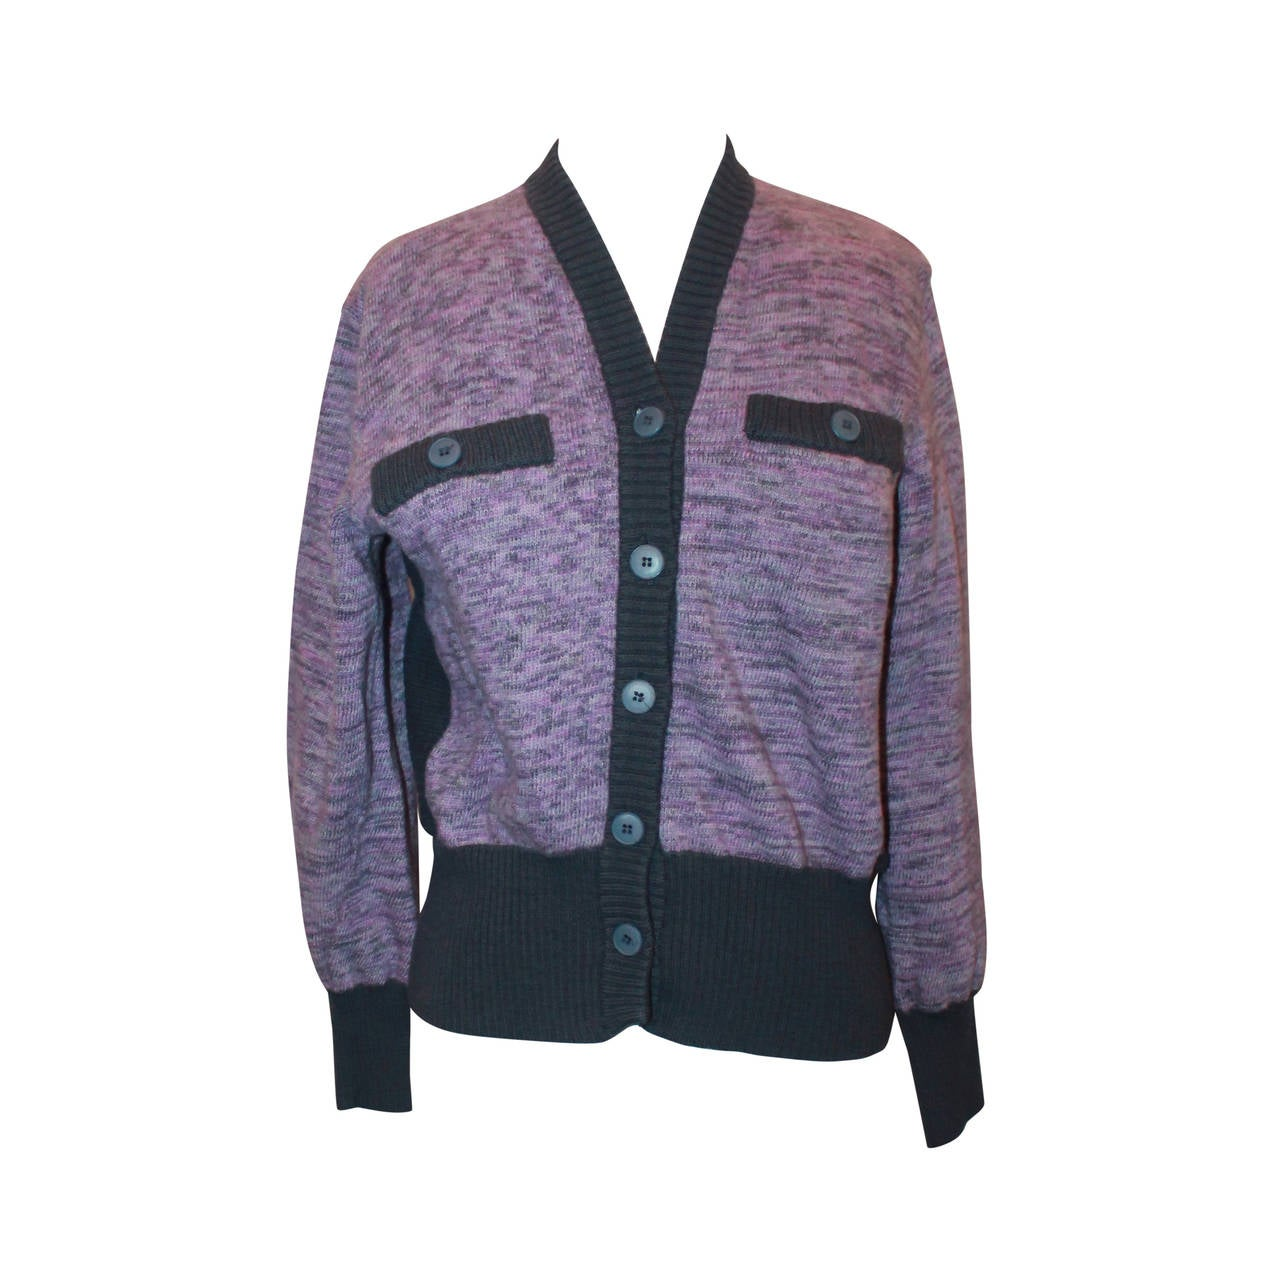 c6f0e99d44 YSL 1960 s Vintage Lavender and Charcoal Grey Cardigan - 38 For Sale ...